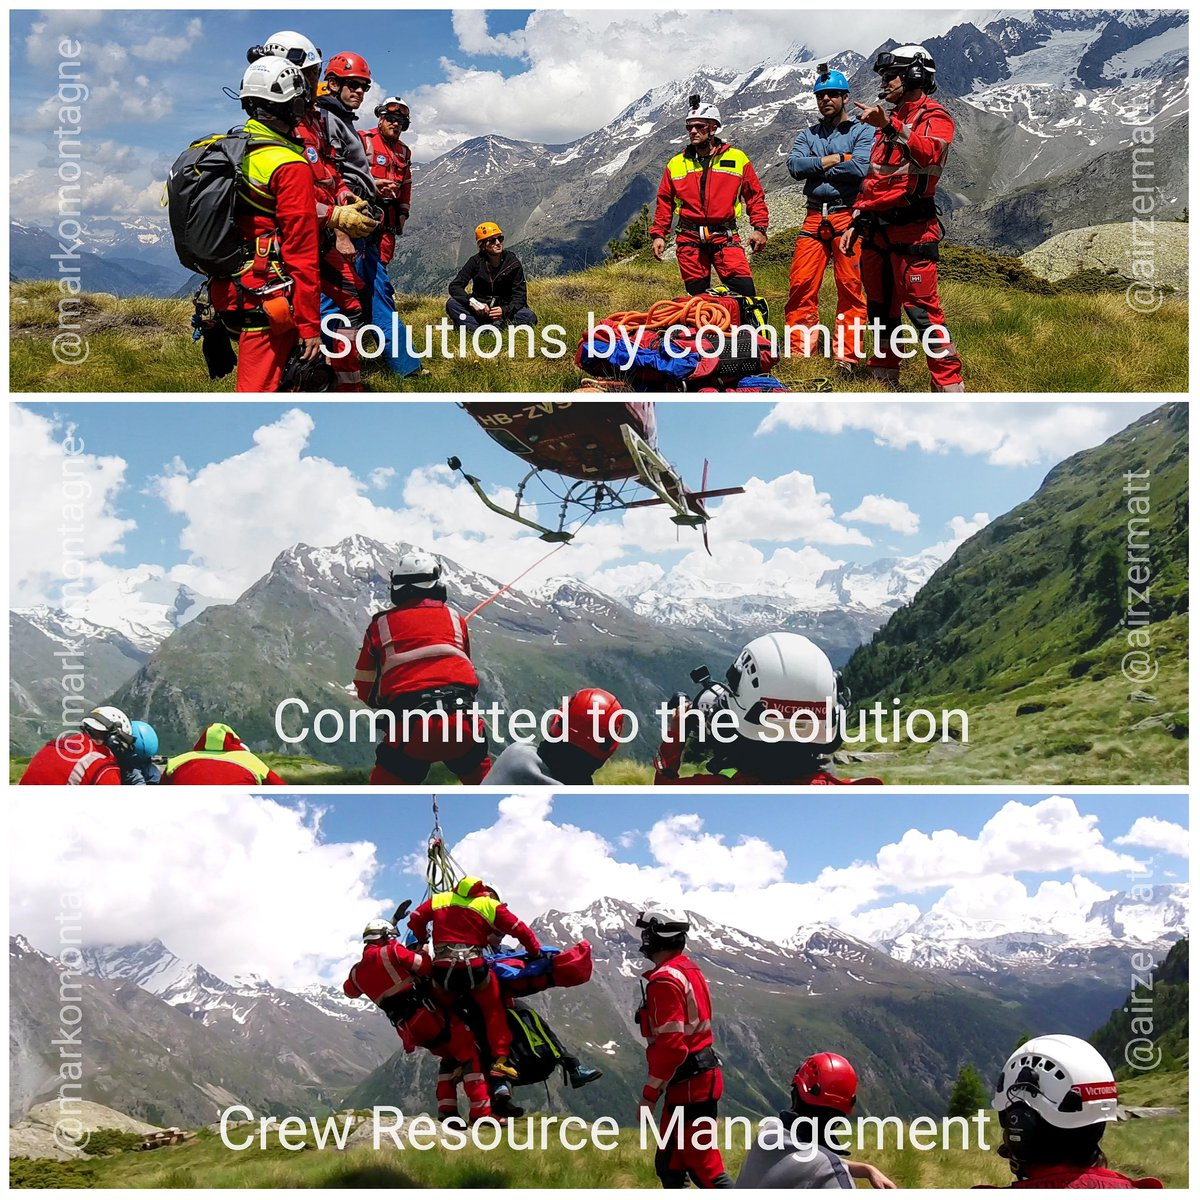 #mountainmemories #heliwork #technicalaircrew #heliopsmag #airbushelicopters #as350 #h125 #airzermatt #instahelicopter #crewresourcemanagement https://t.co/LO6MWlbo0q https://t.co/Y8HdAo2Mzk